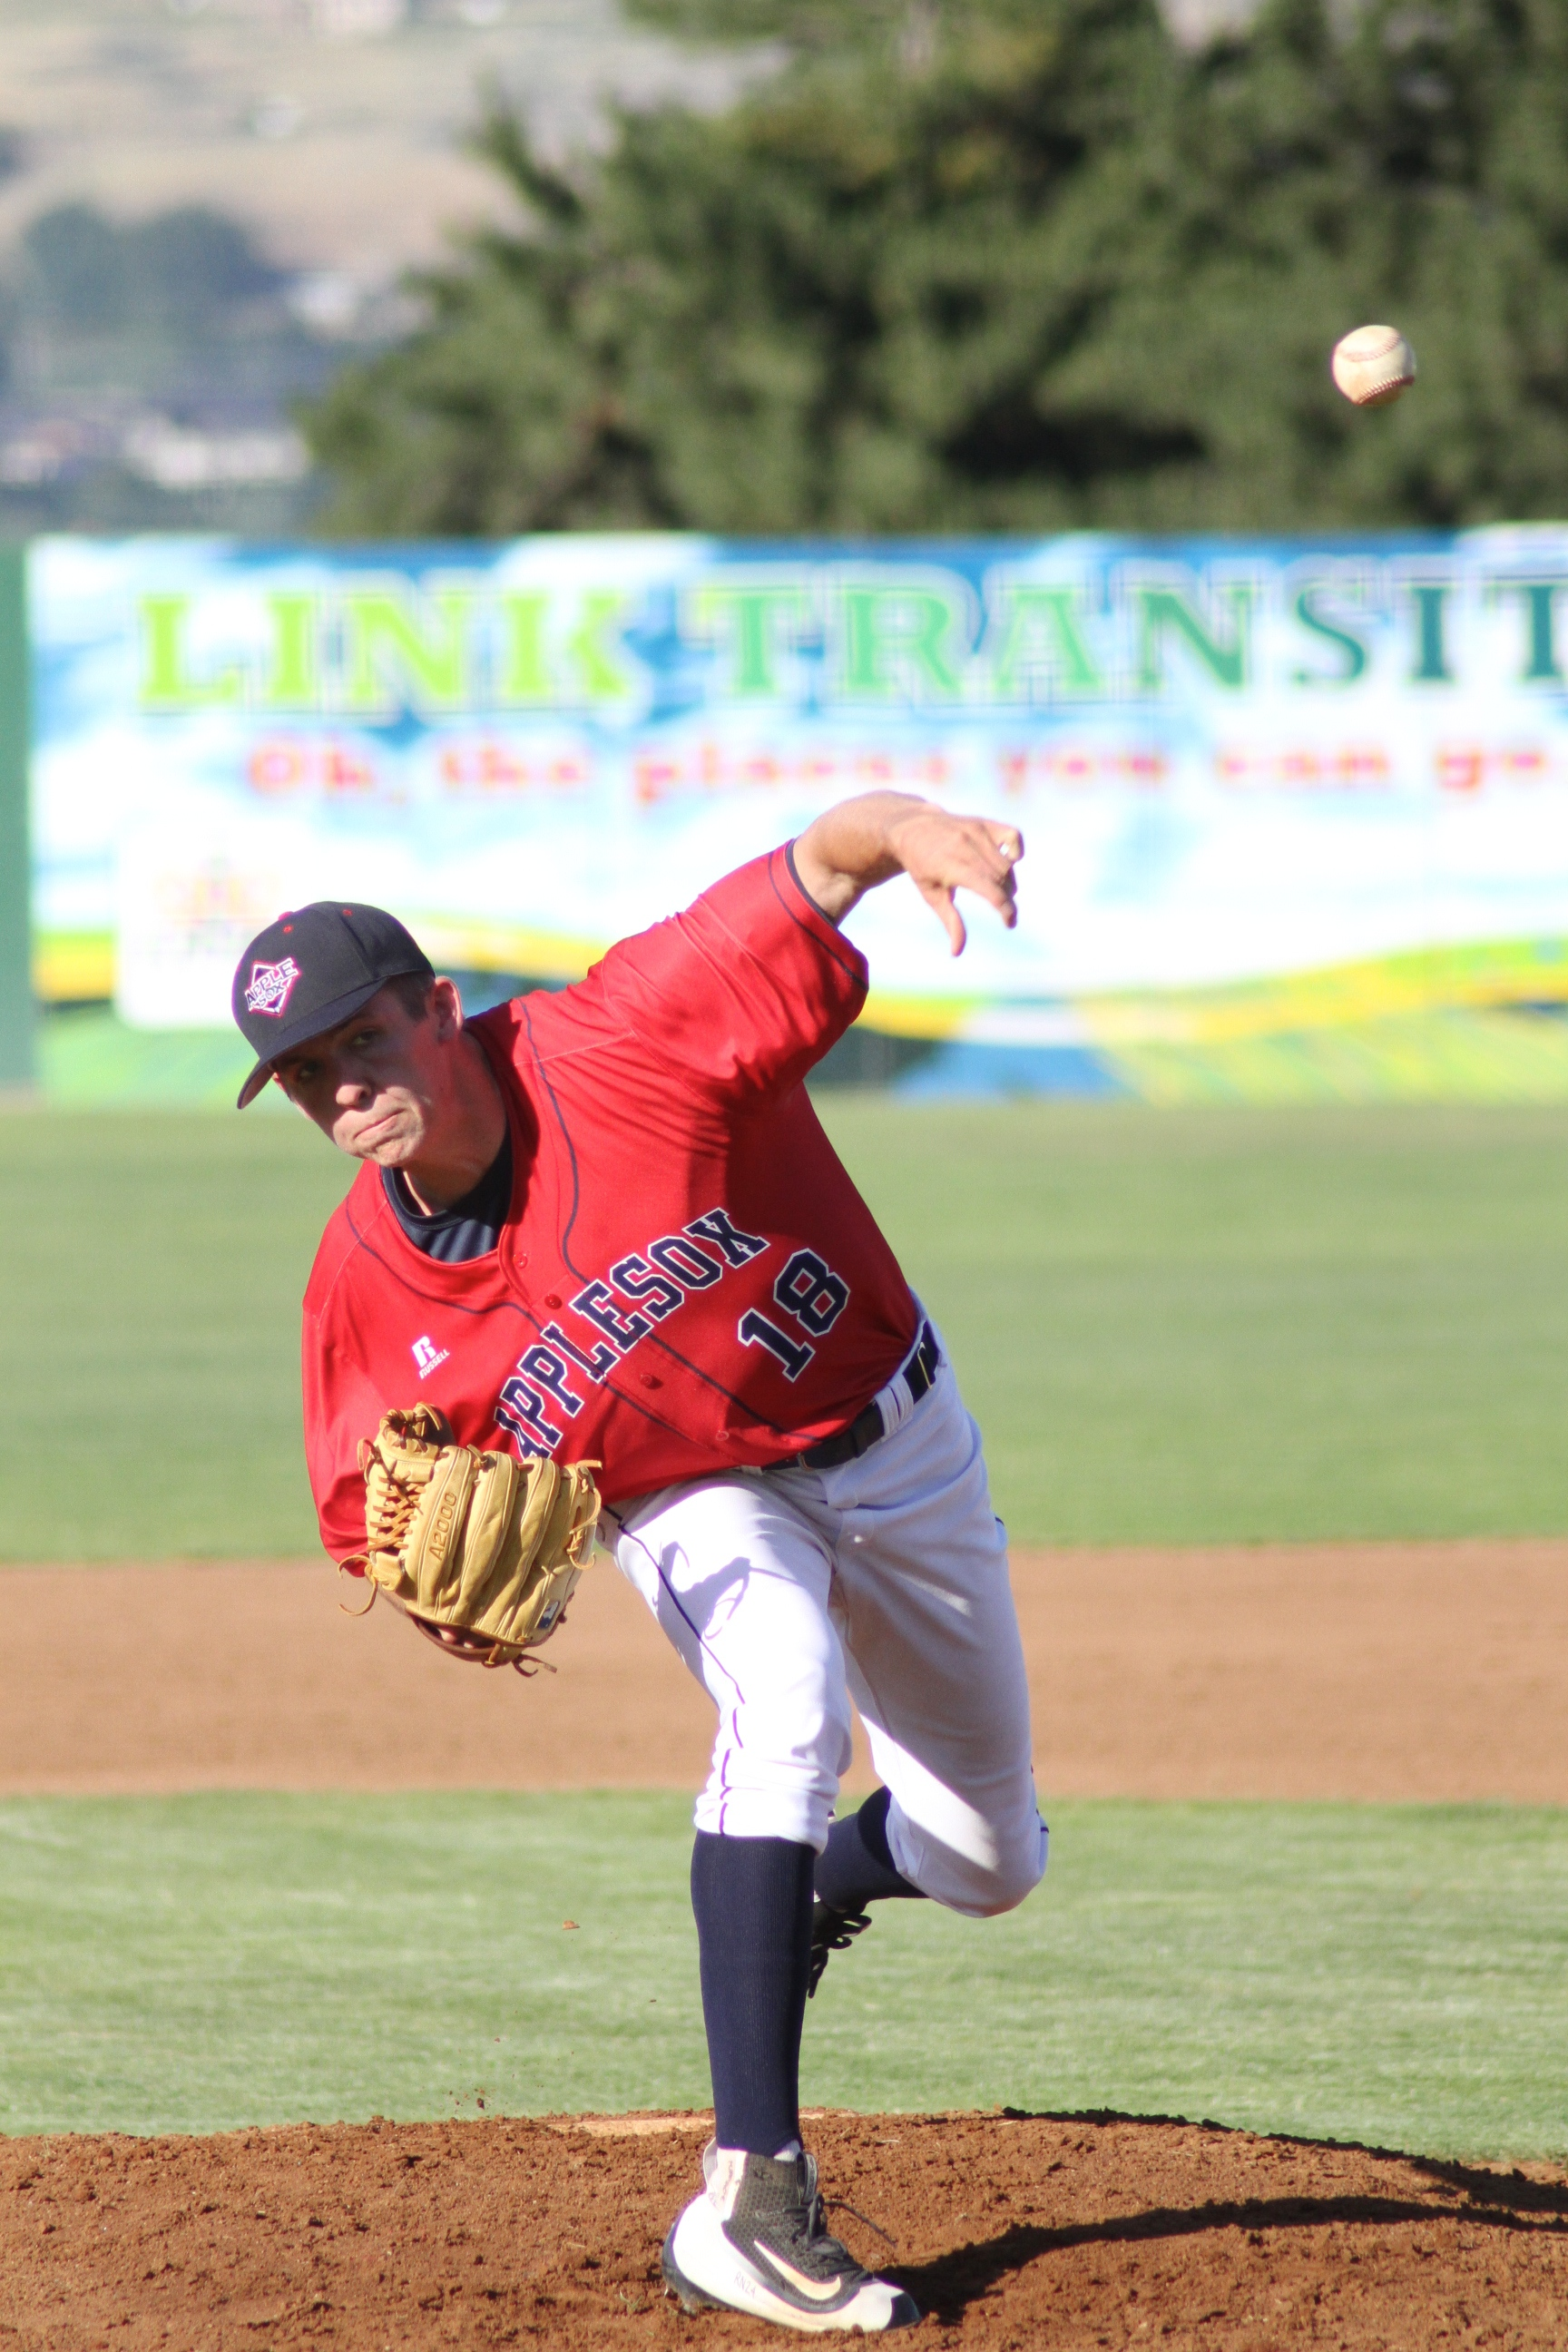 The Wenatchee AppleSox fell 6-4 to the Victoria HarbourCats Thursday night. Wenatchee fell to 0-6 on the season.